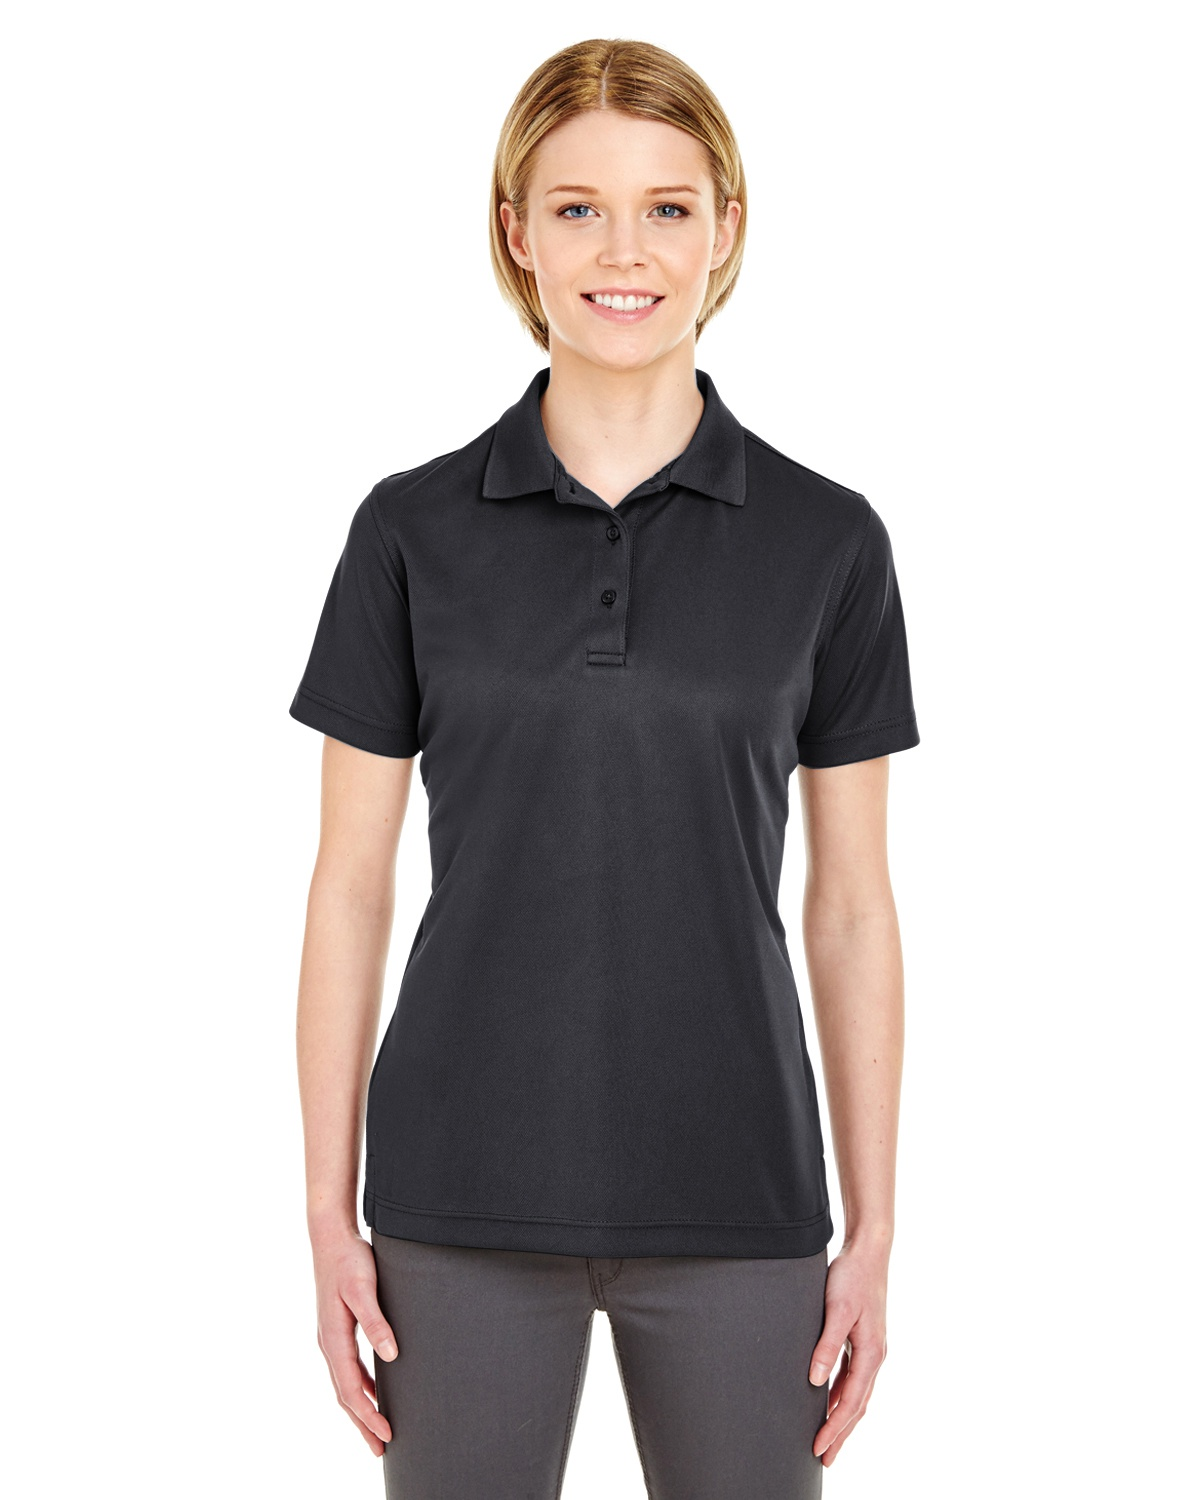 'UltraClub 8210L Ladies' Cool & Dry Mesh Piqué Polo'